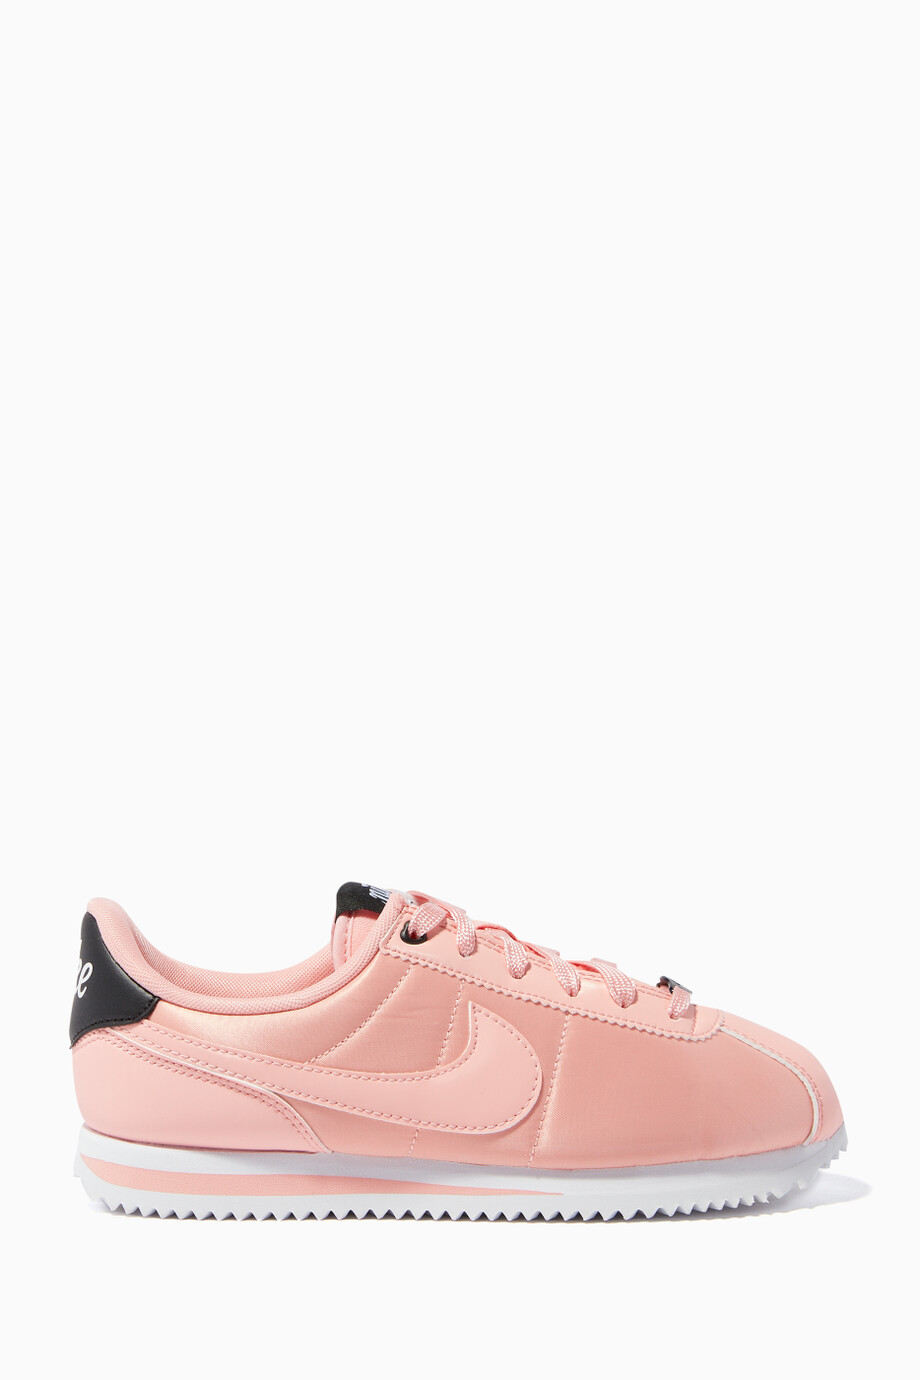 size 40 09424 5228d Shop Nike Pink Pink Cortez Basic Sneakers for Kids | Ounass UAE